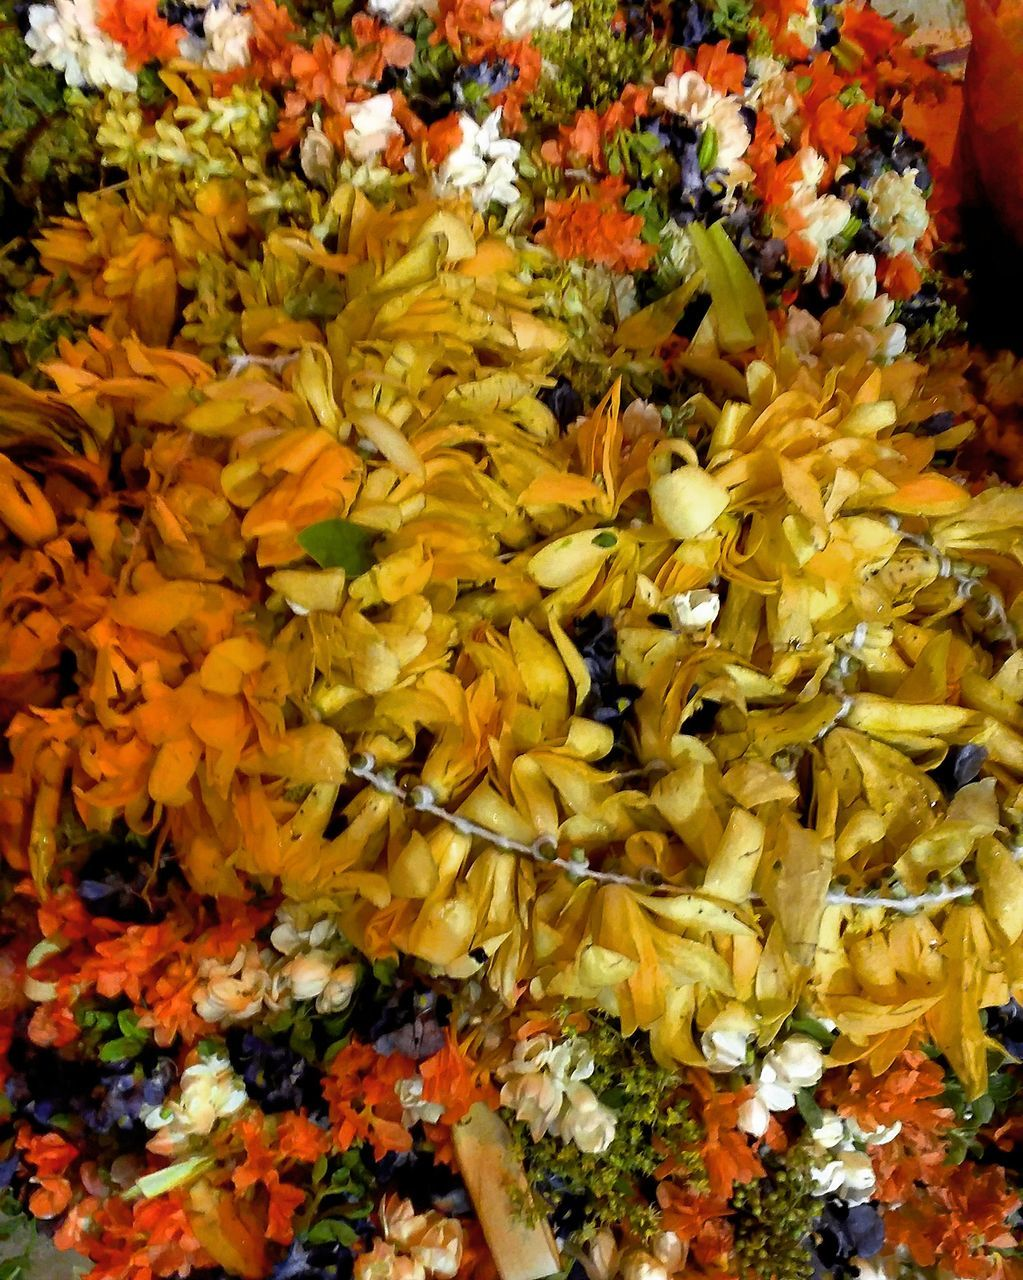 flower, fragility, yellow, nature, beauty in nature, petal, flower head, freshness, close-up, flower market, no people, marigold, growth, outdoors, day